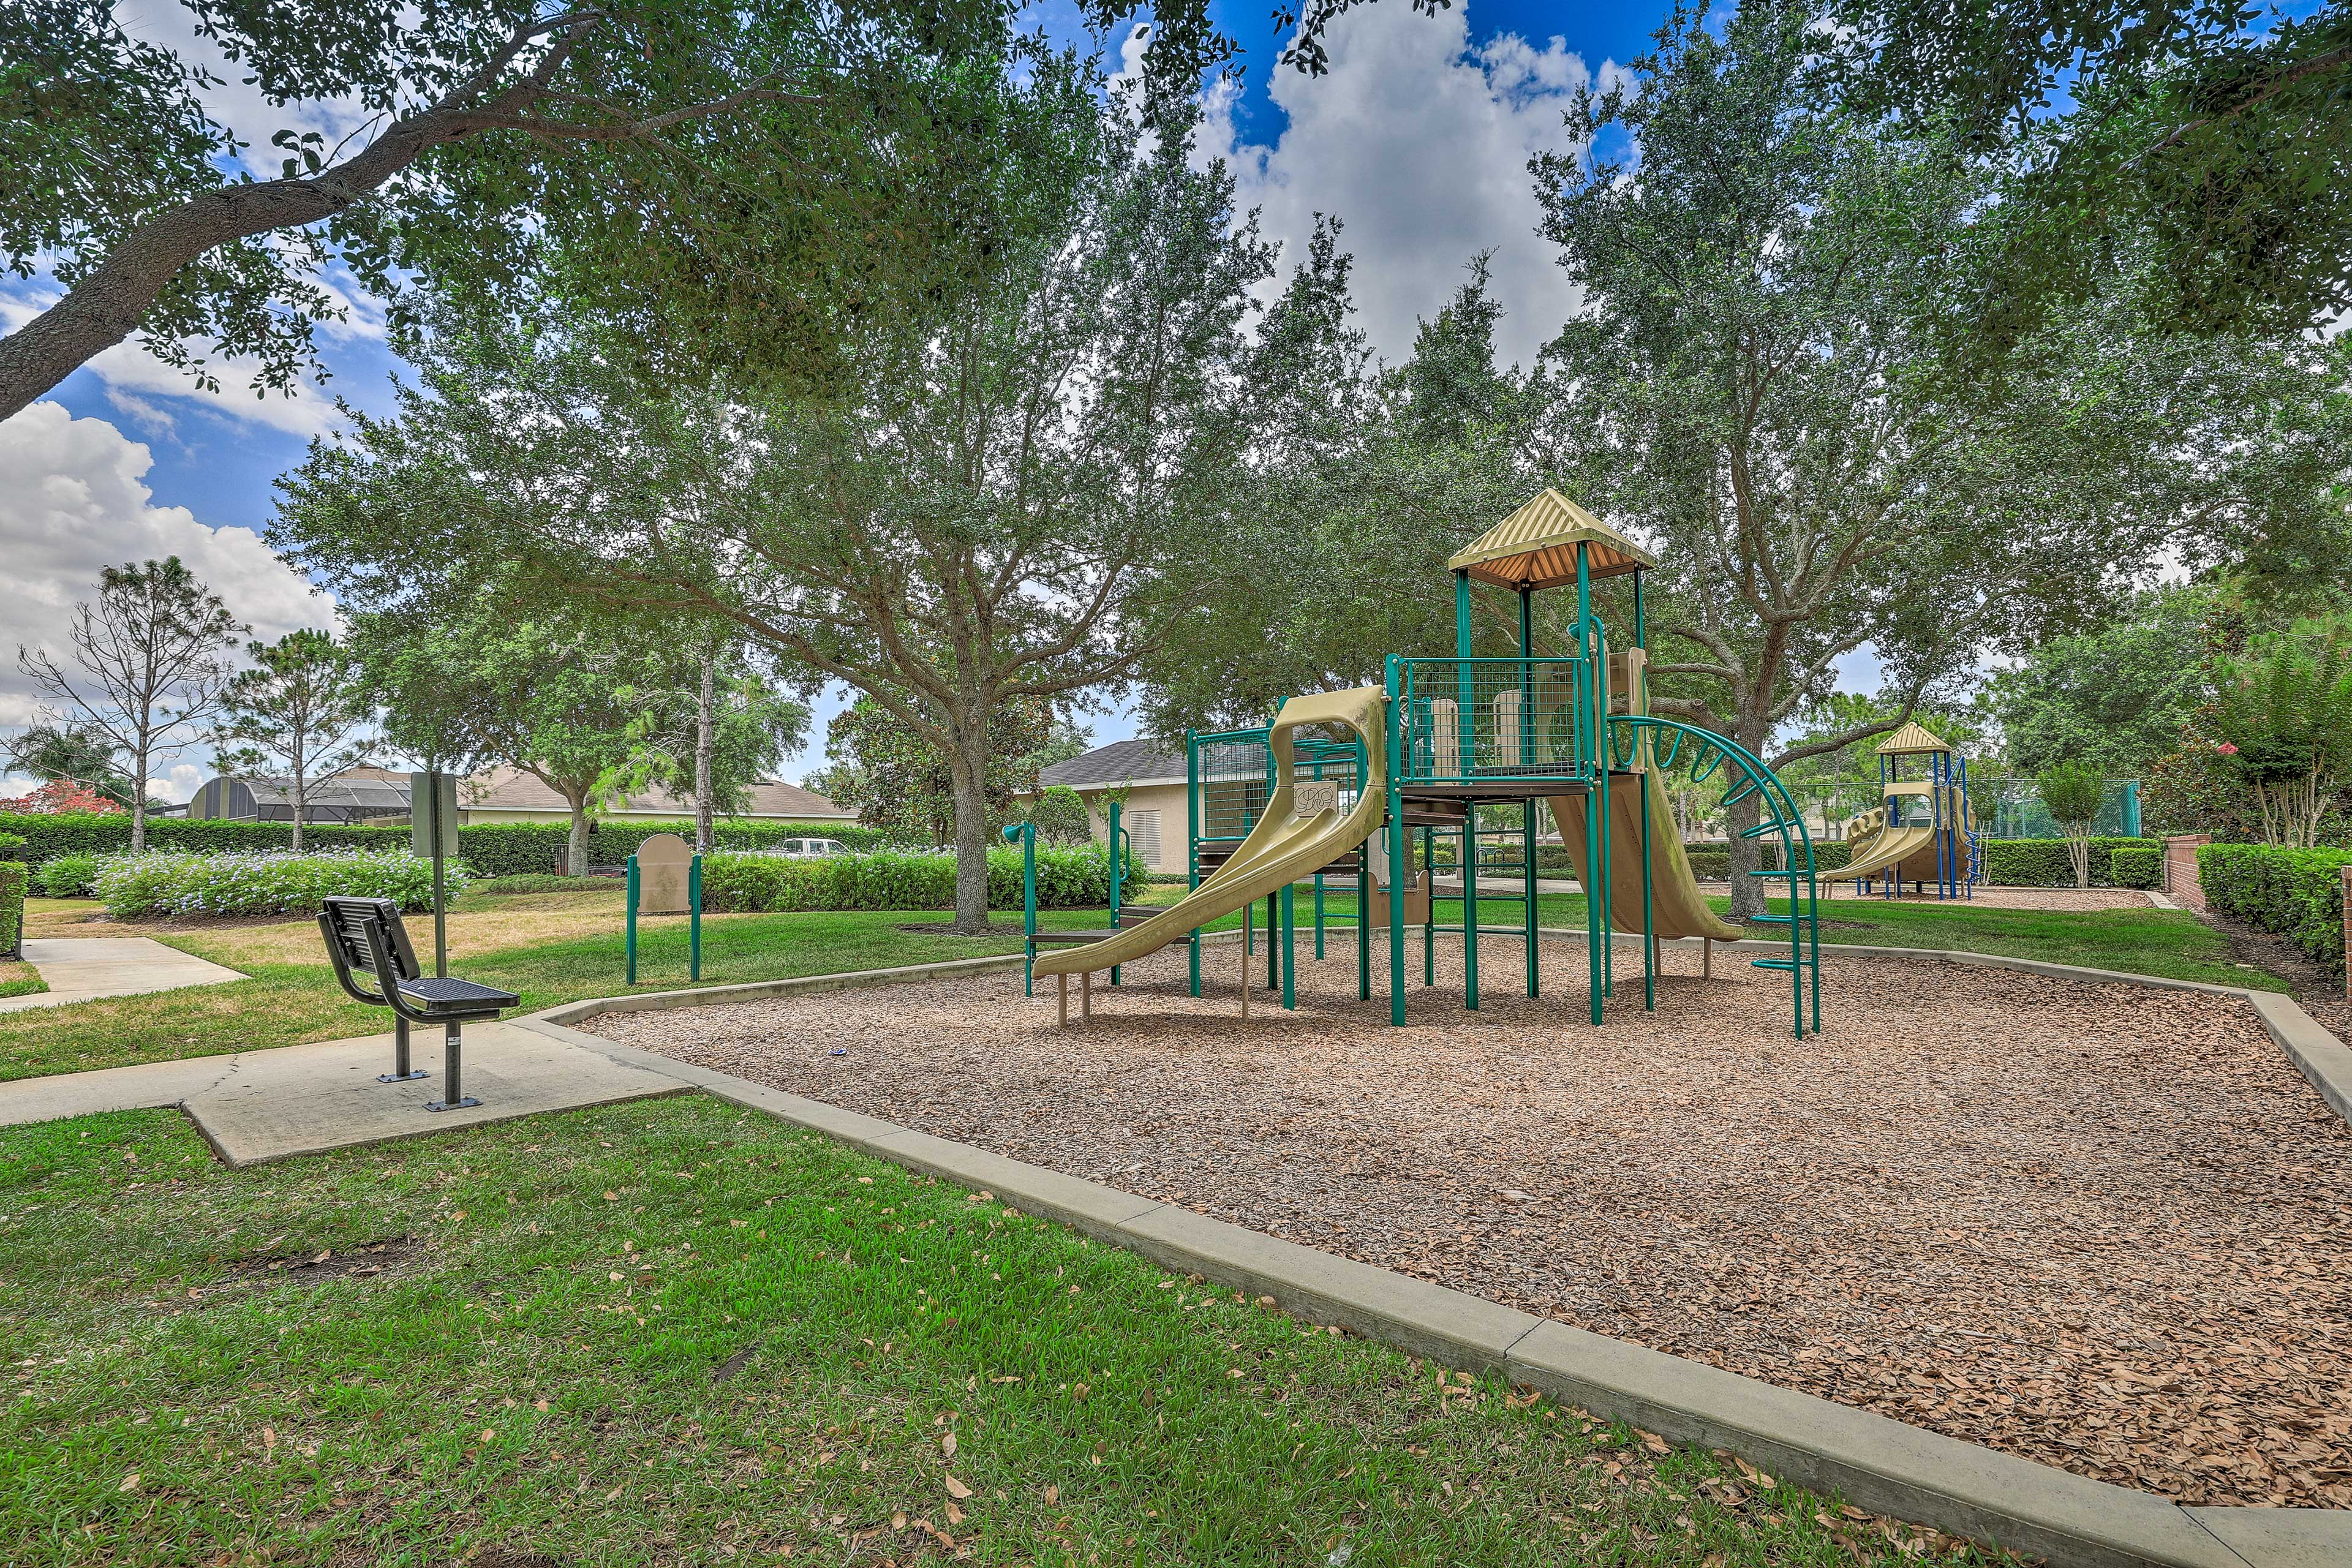 The kids will love playing on the playground.